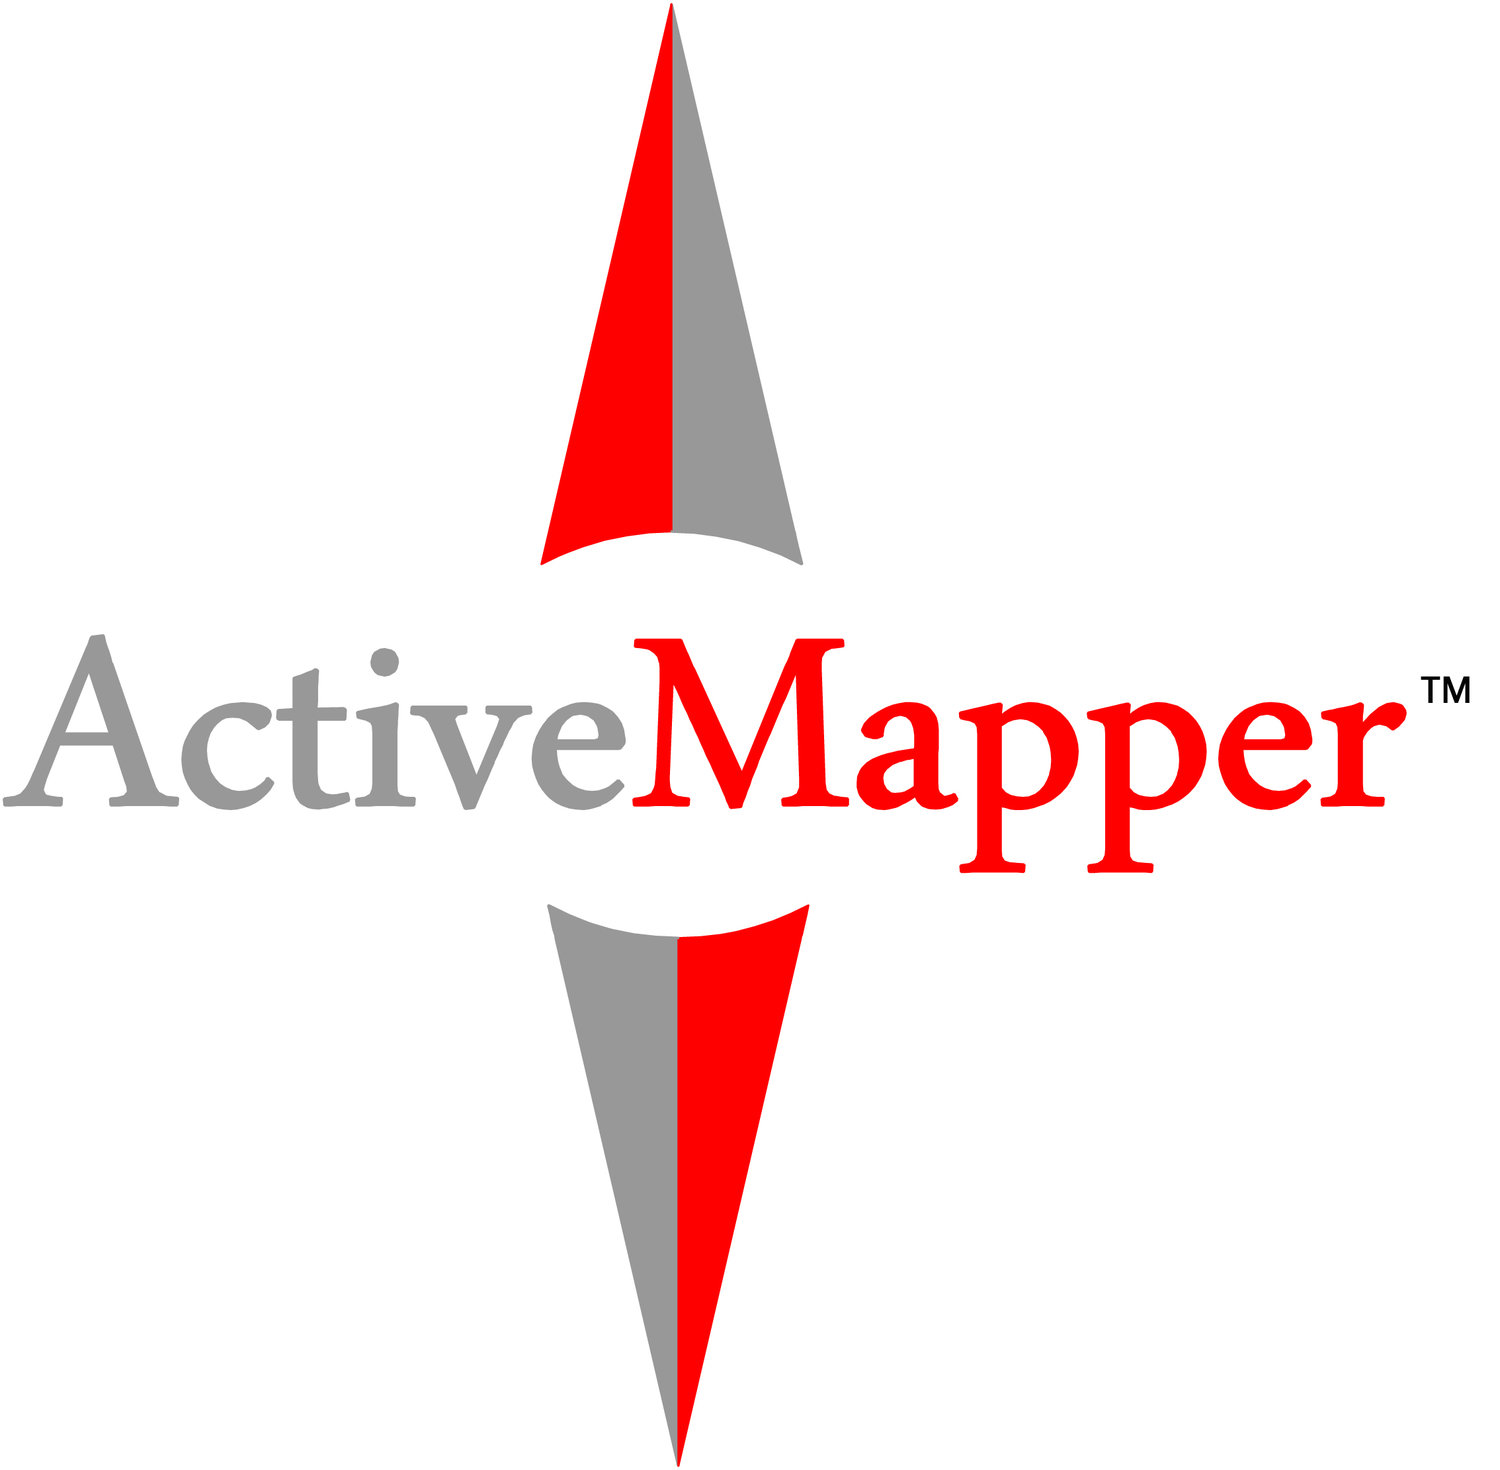 Active Mapper